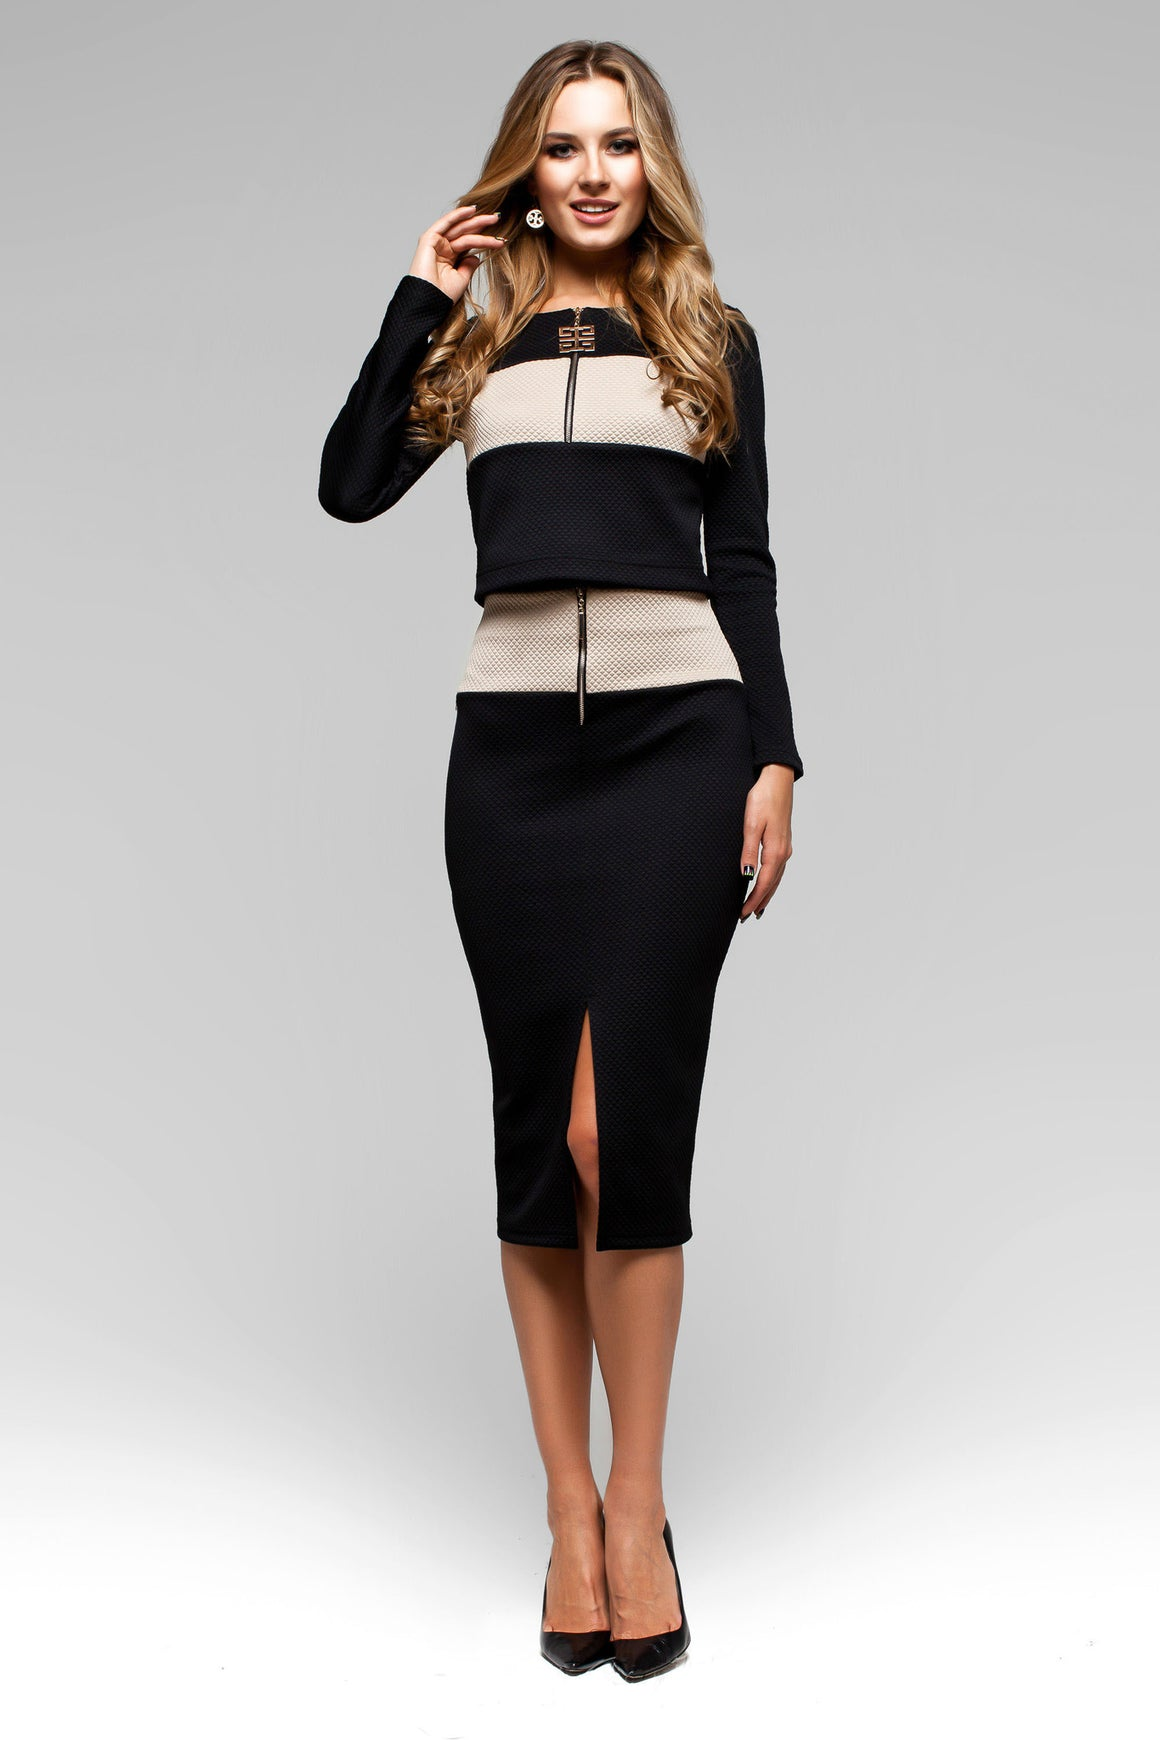 Black Two Piece Comfortable Long Sleeve Skirt Suit Dress with Pencil Skirt - Kollekcio  - 1